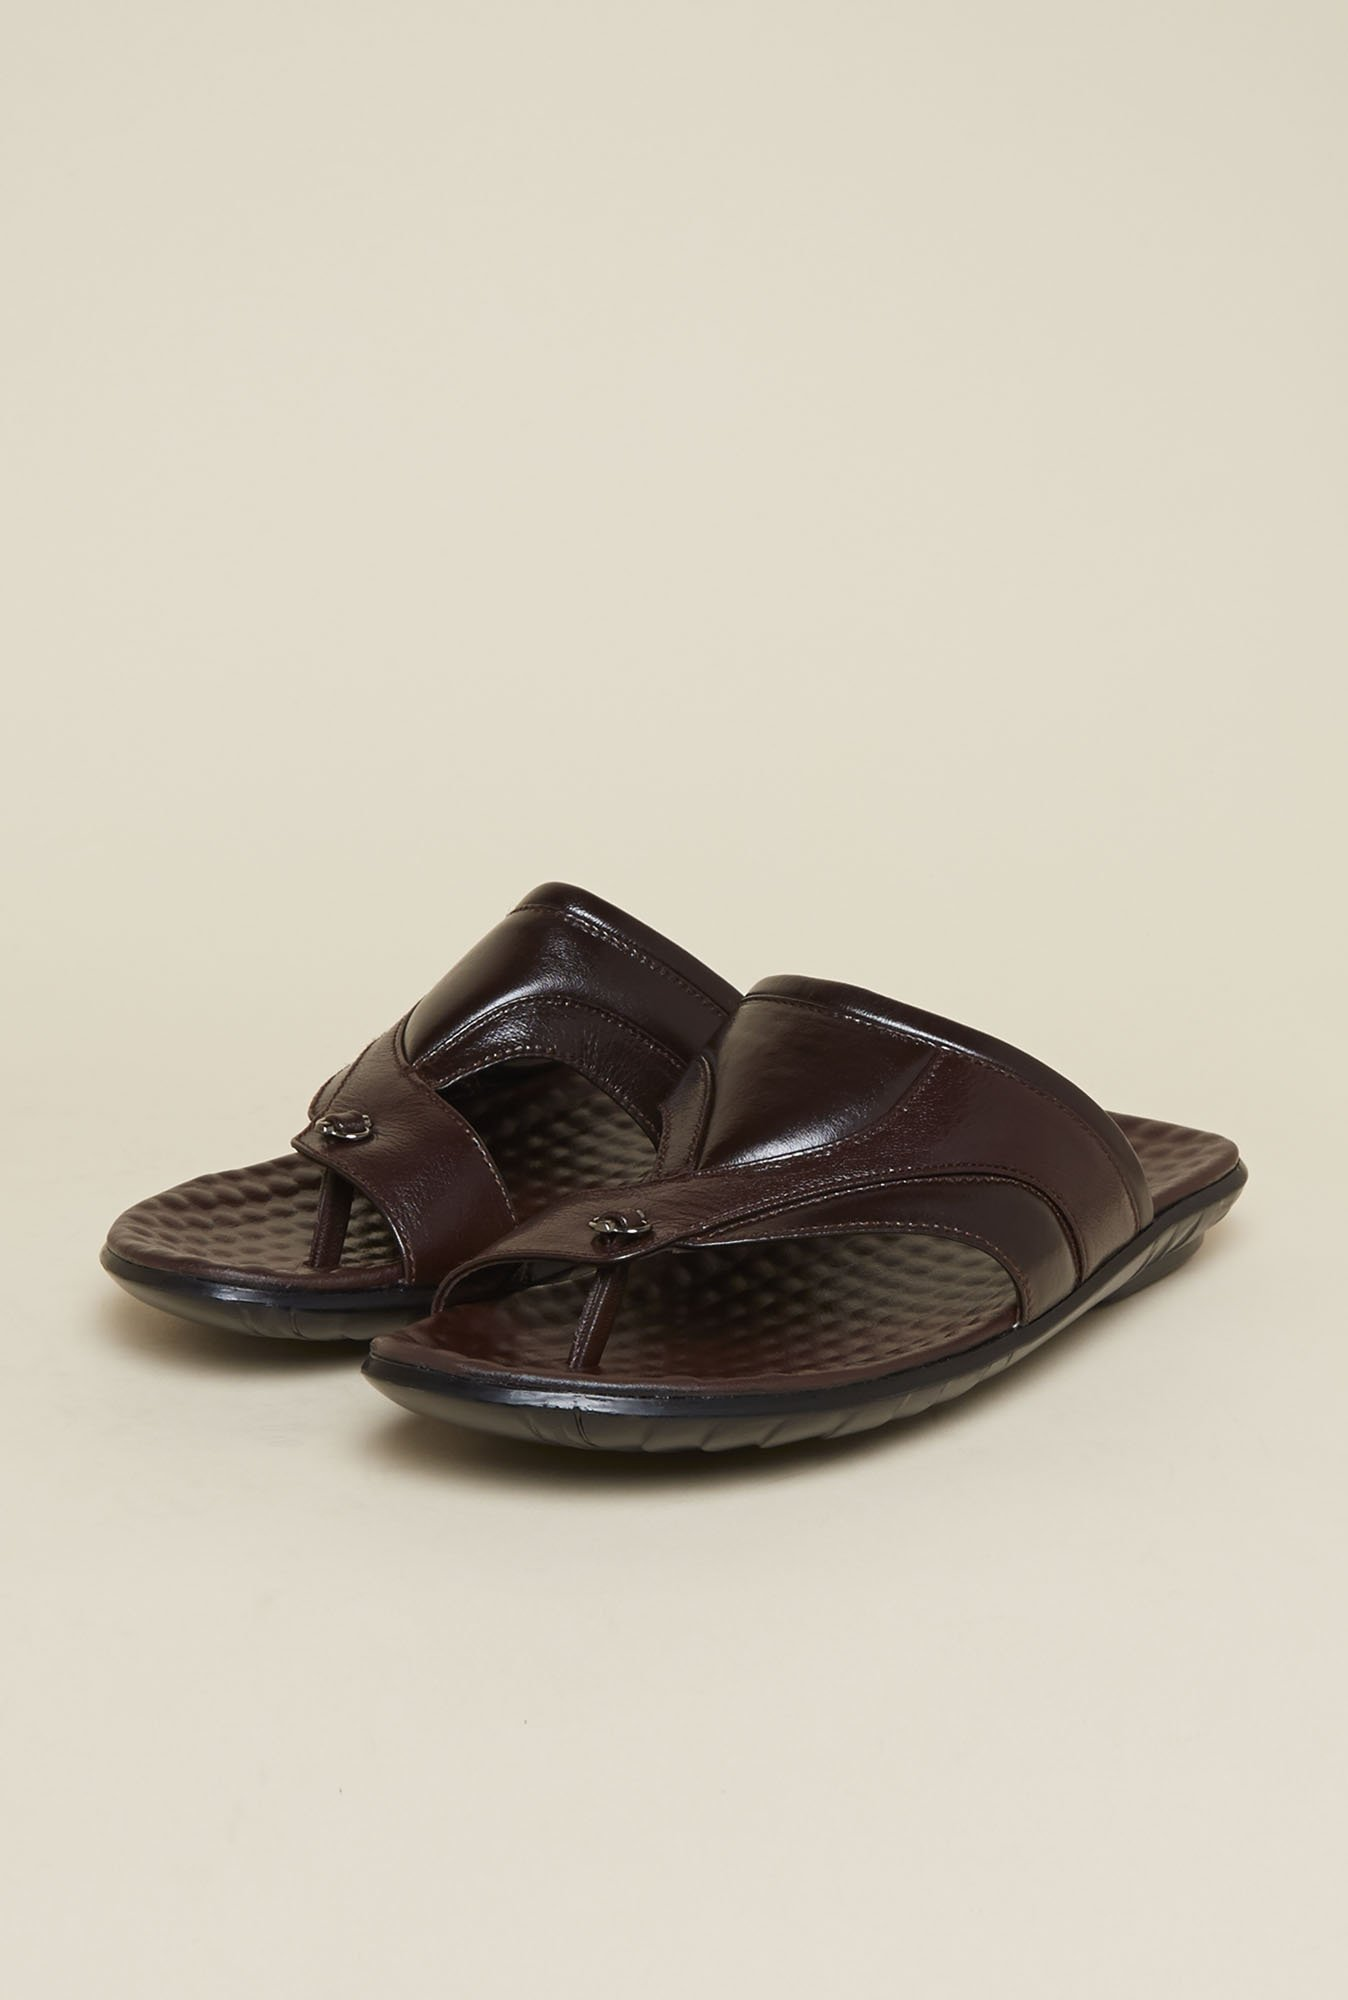 Mochi Brown Leather Toe Ring Sandals